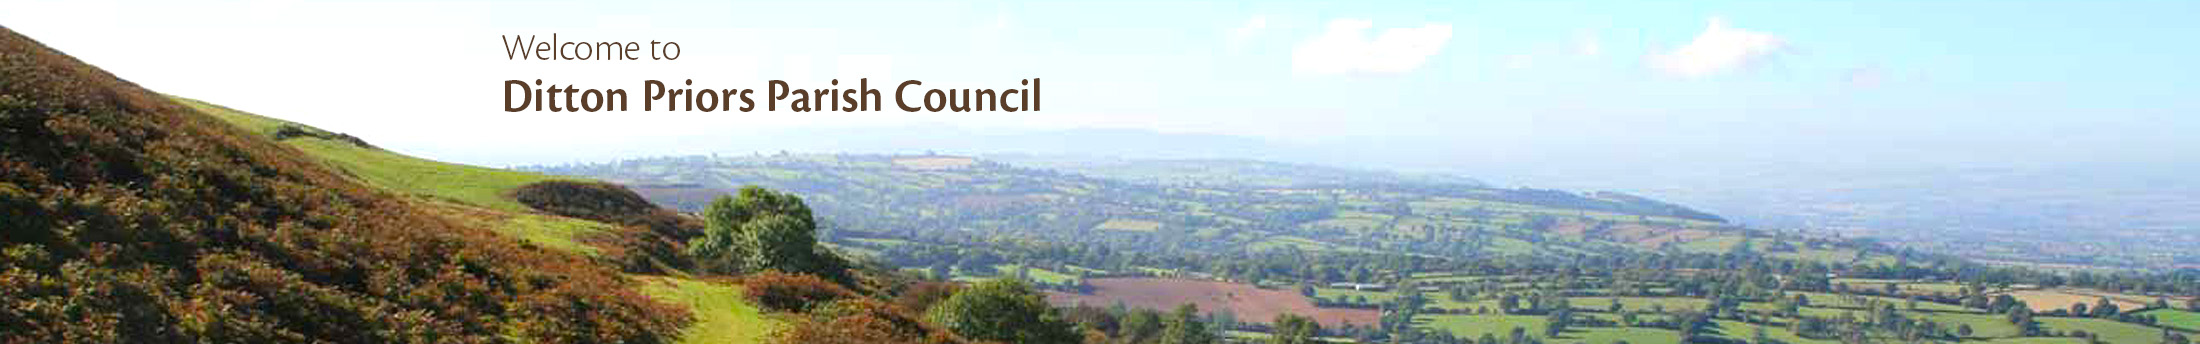 Header Image for Ditton Priors Parish Council